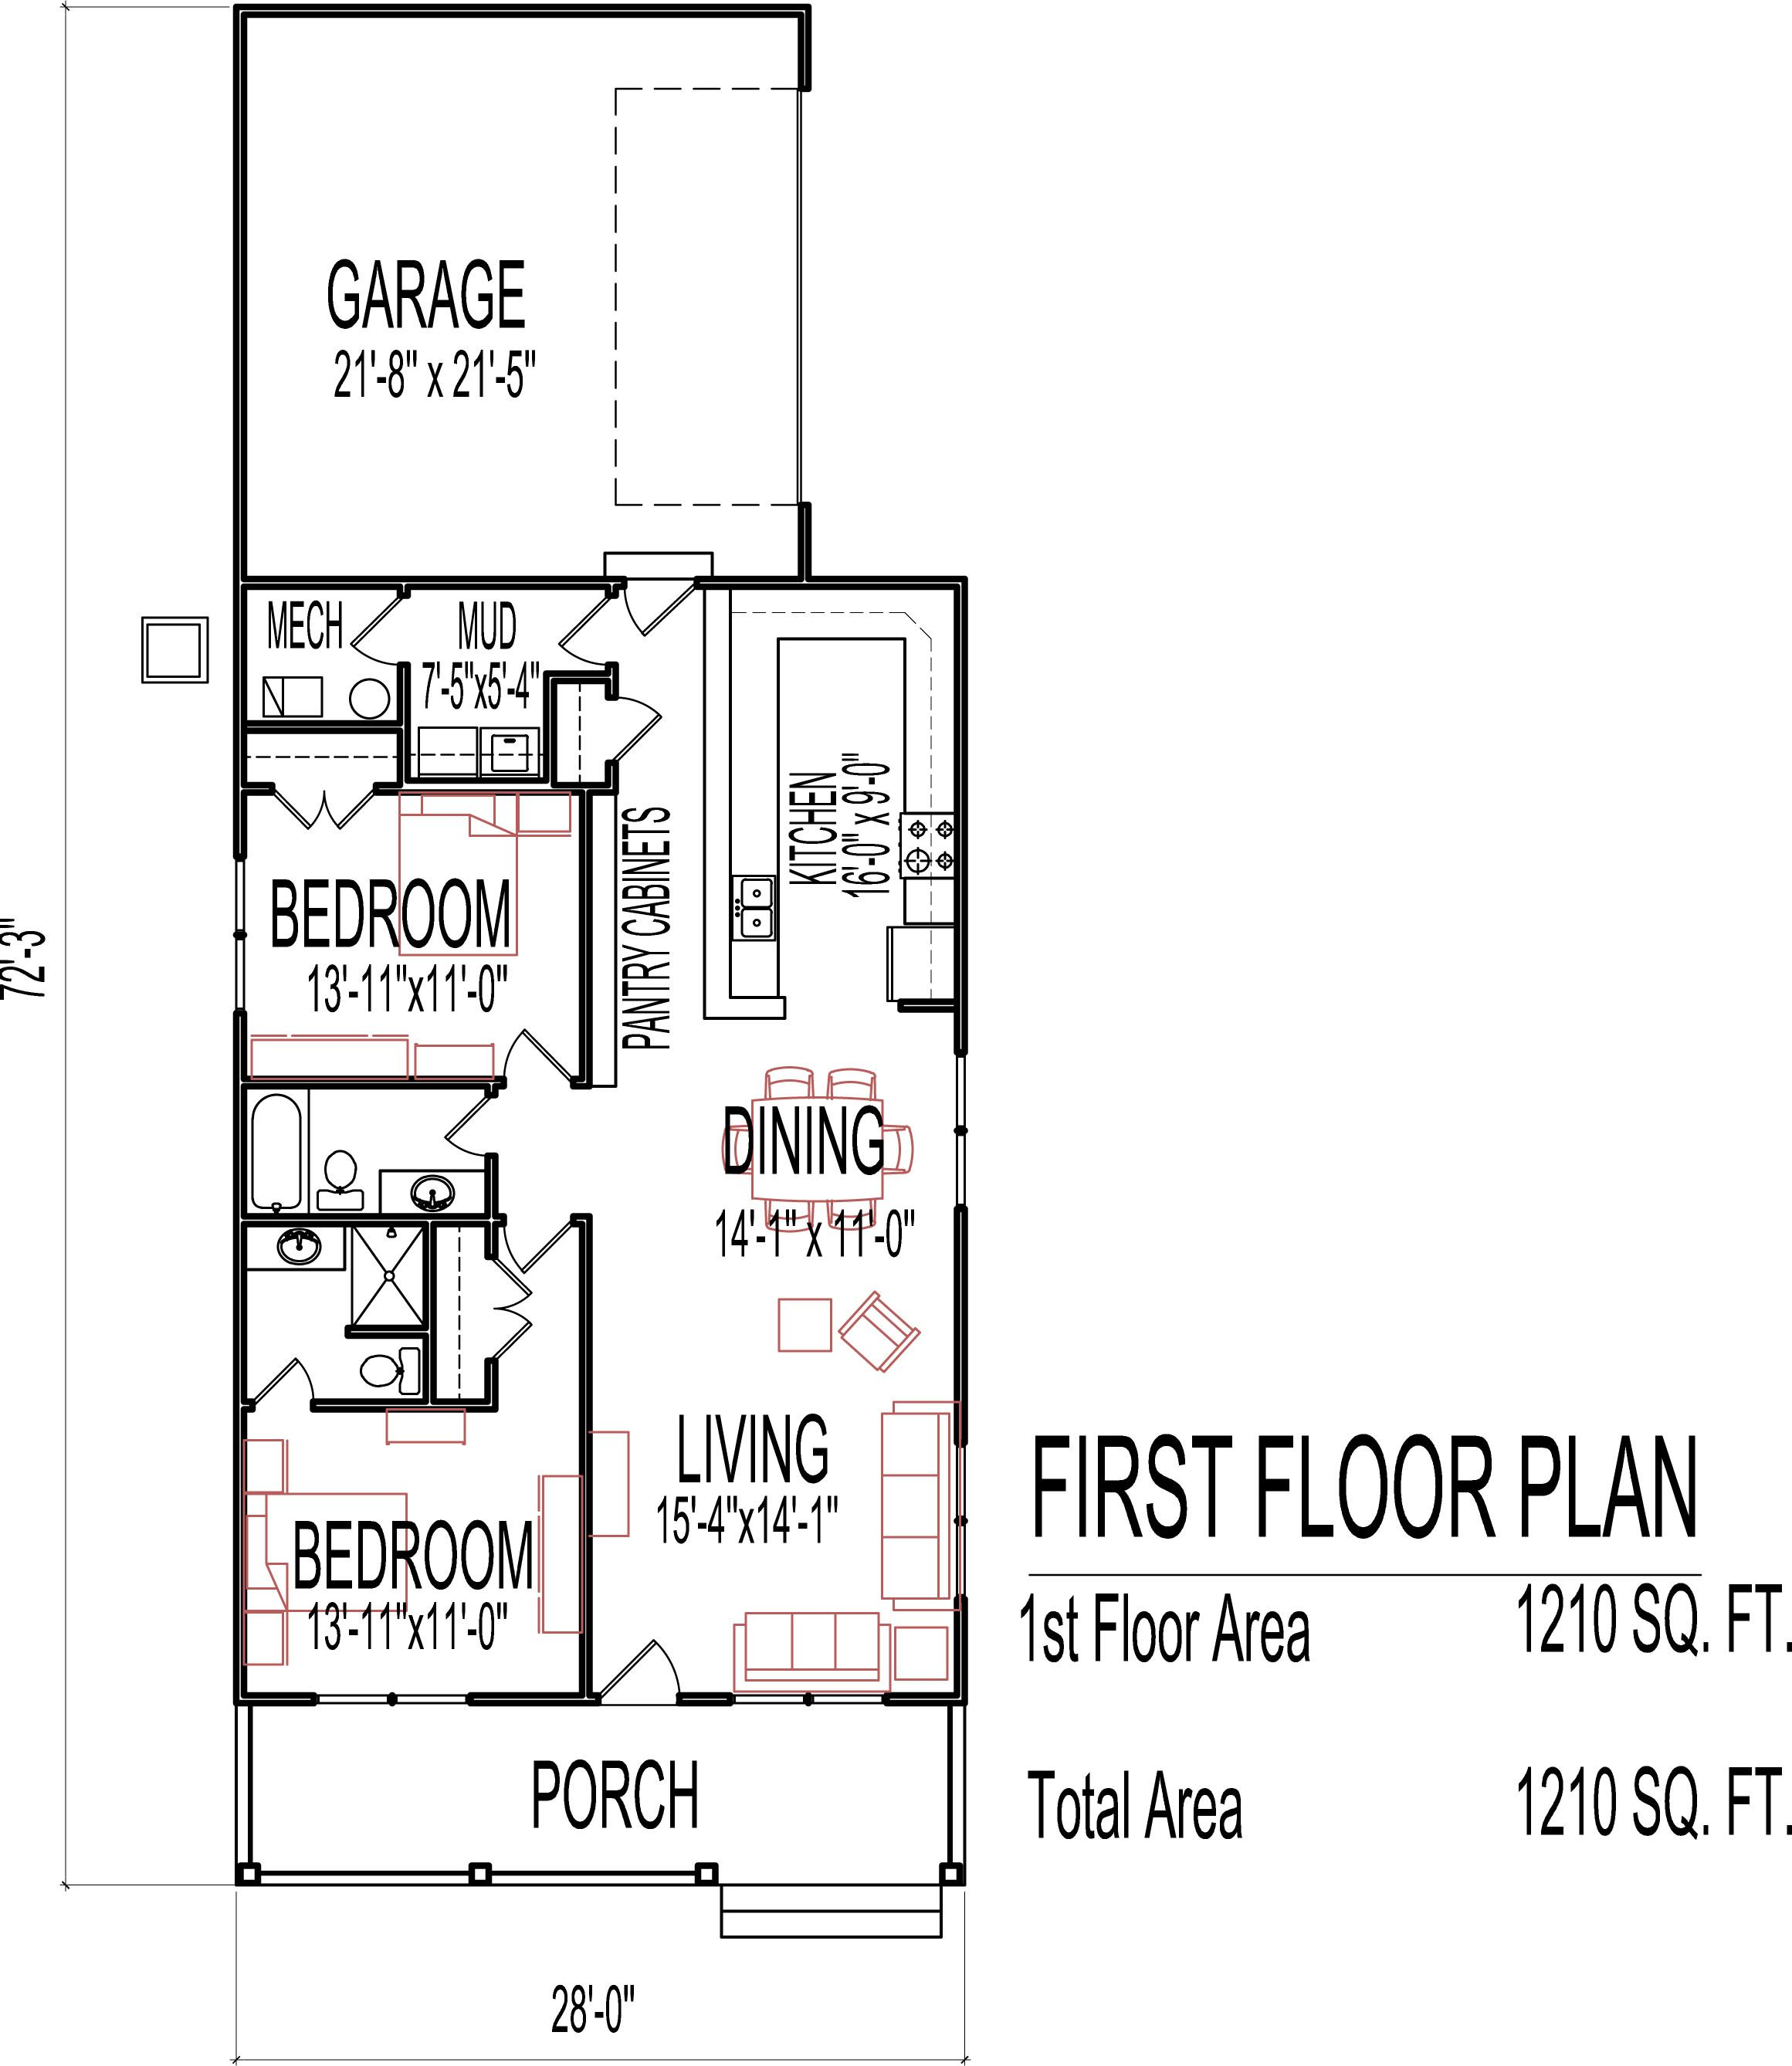 one story two bedroom house plans small low cost economical 2 bedroom 2 bath 1200 sq ft 27329